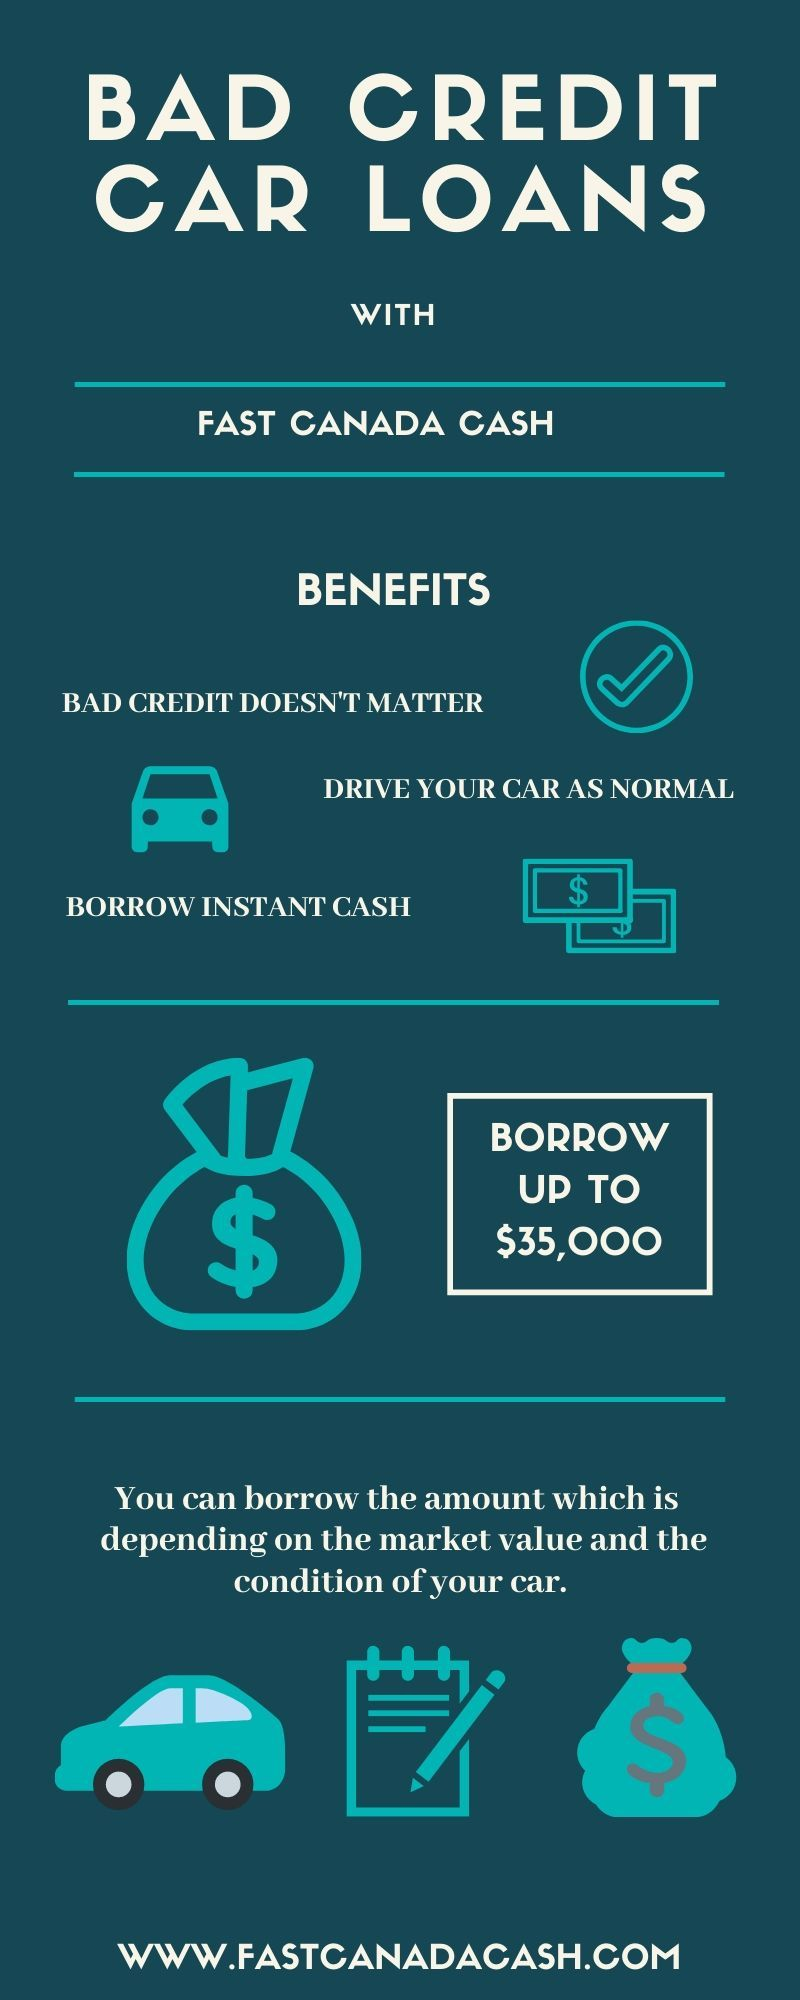 Improve Your Financial Life With Bad Credit Car Loans In Bc In 2020 Bad Credit Car Loan Car Loans Bad Credit